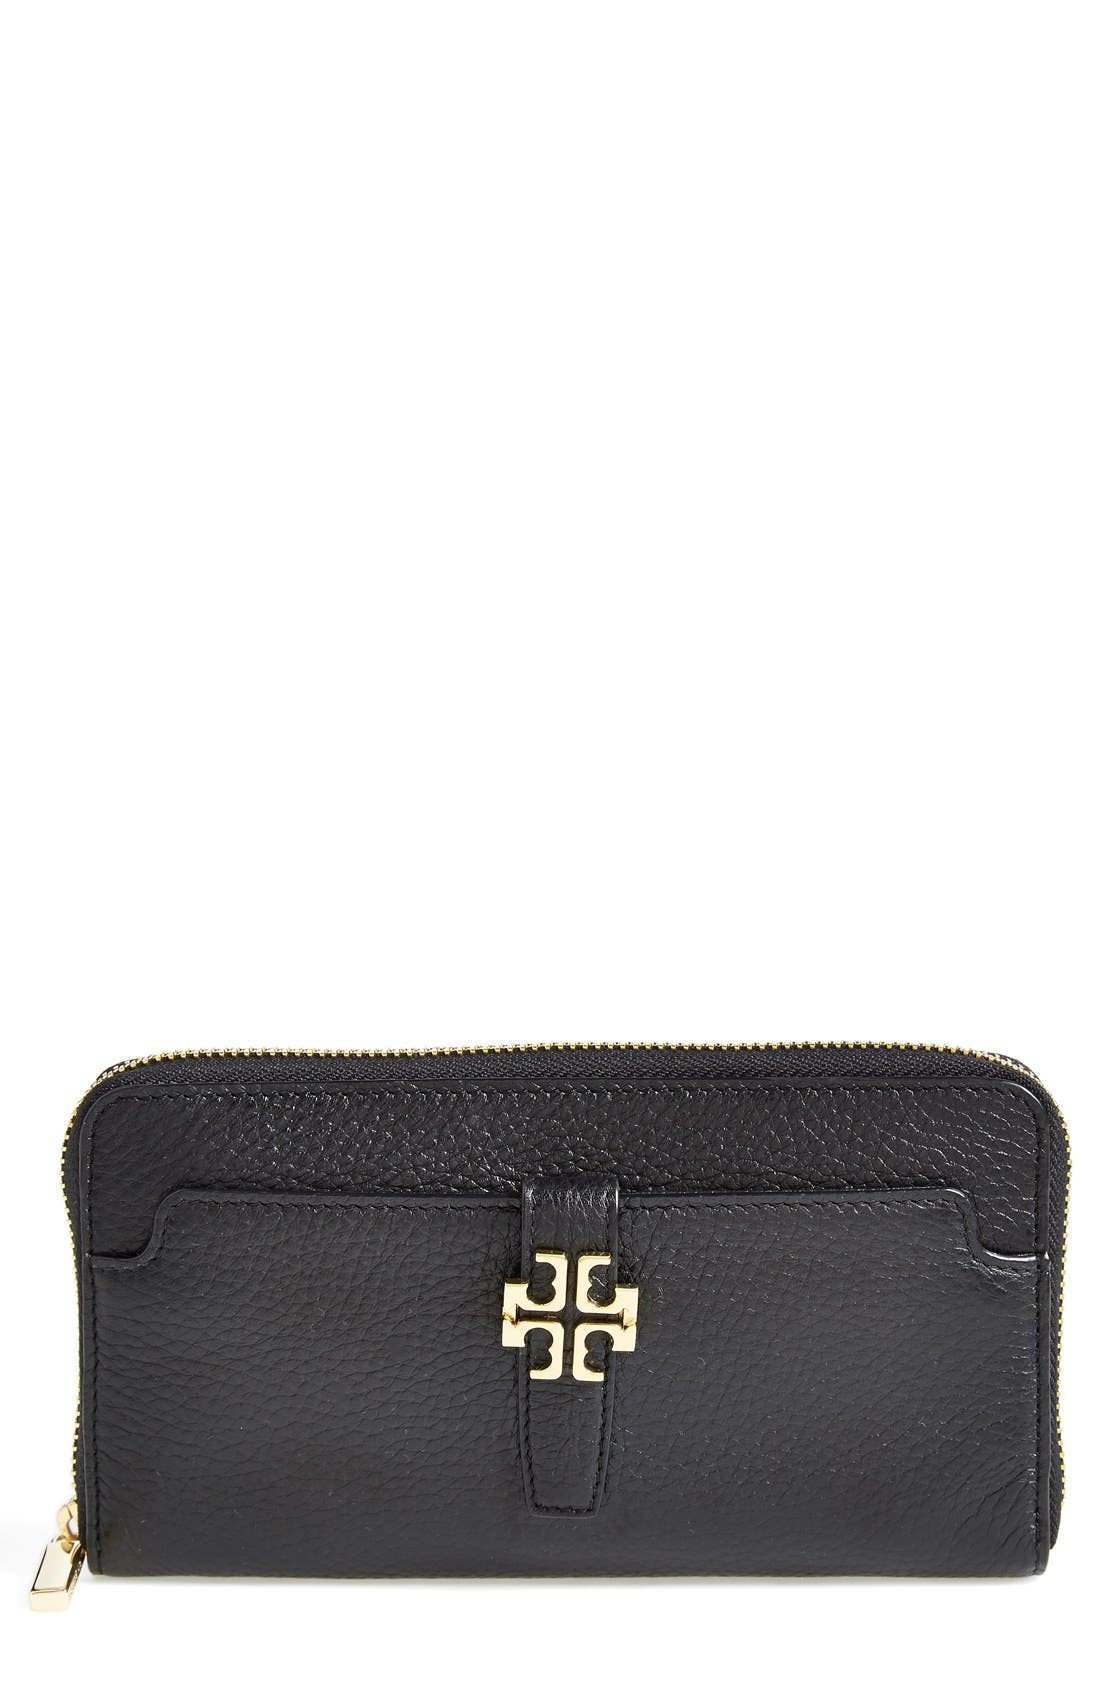 Alternate Image 1 Selected - Tory Burch 'Plaque' Zip Continental Wallet